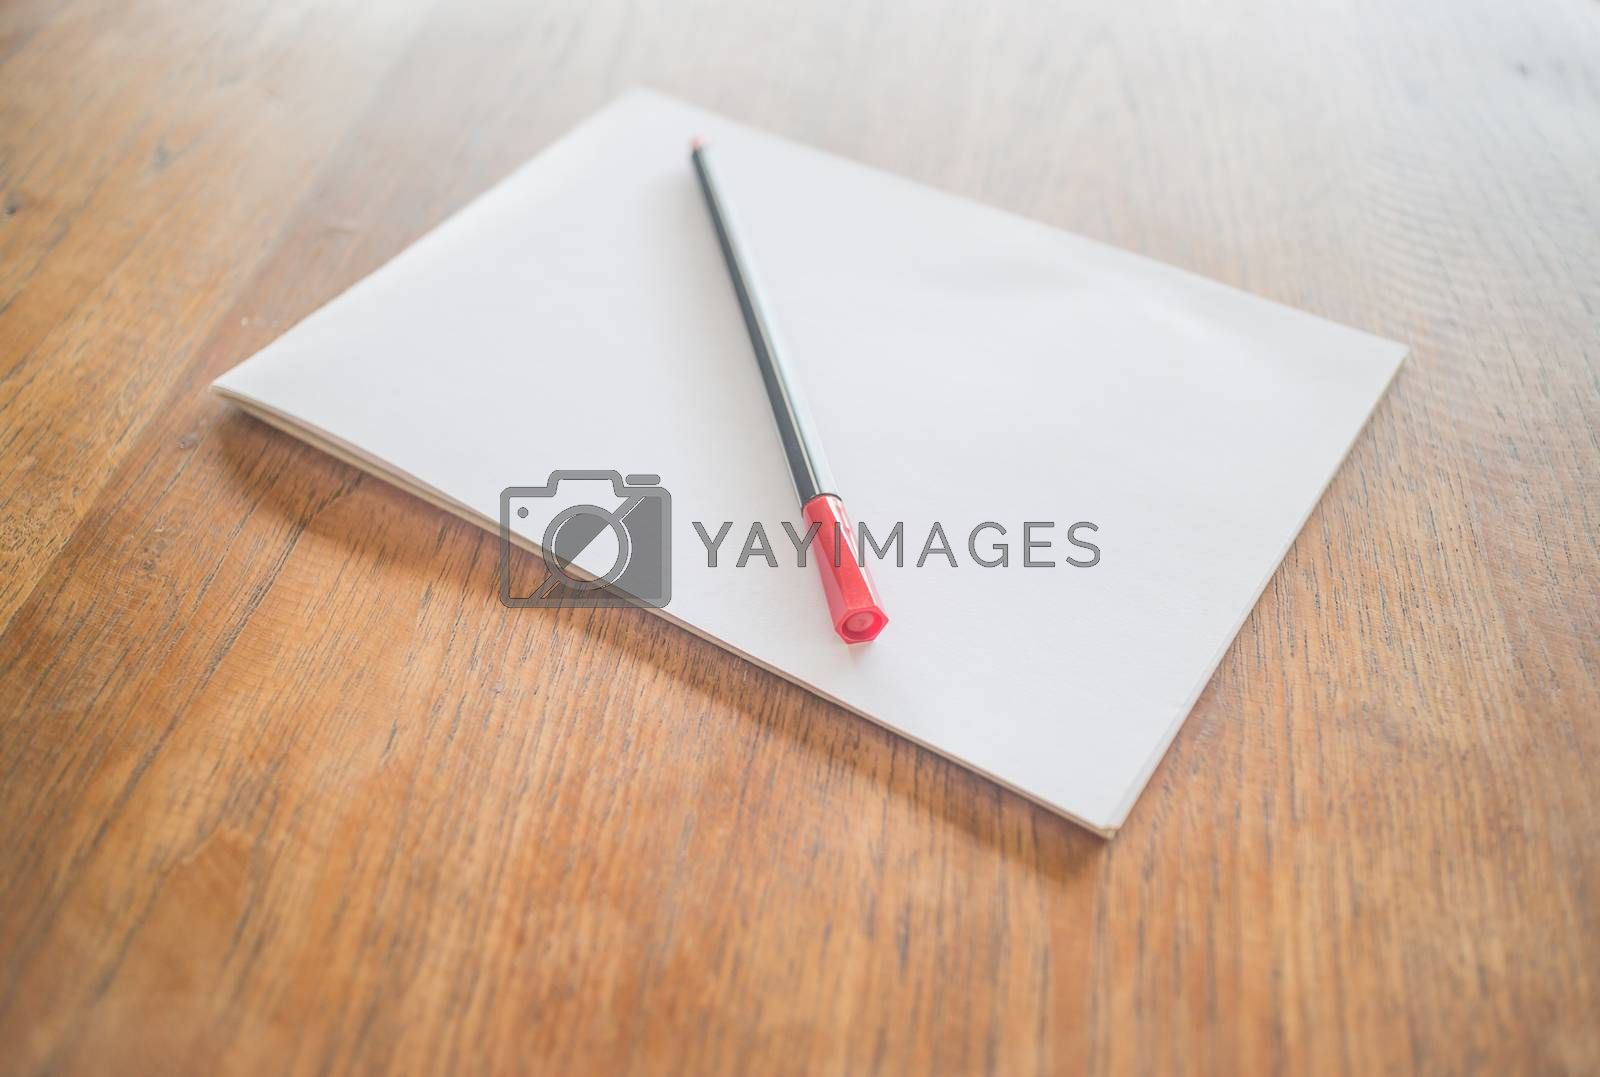 Royalty free image of White paper and red pen on wooden table by nalinratphi